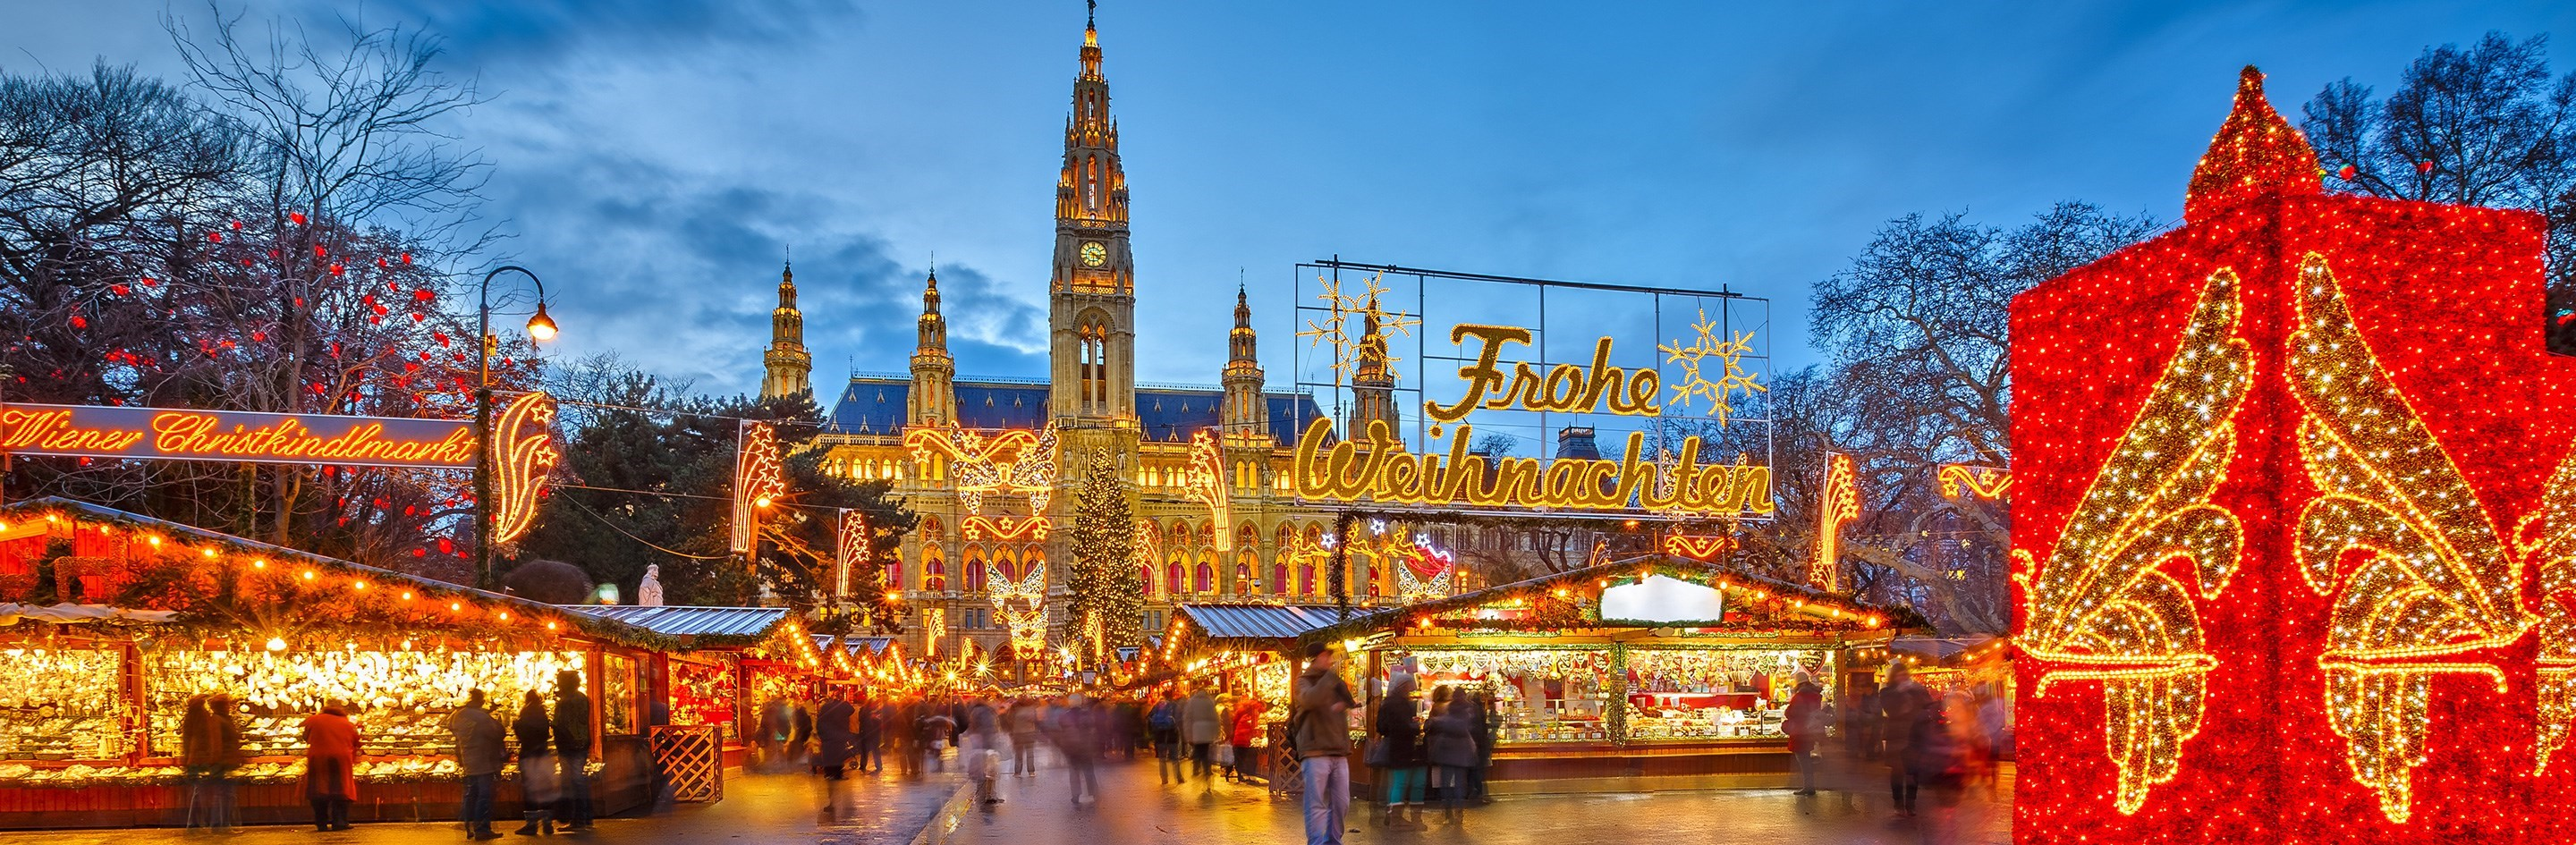 2020 Christmas River Cruises 2020 Iconic Christmas Markets River Cruise | AmaWaterways™